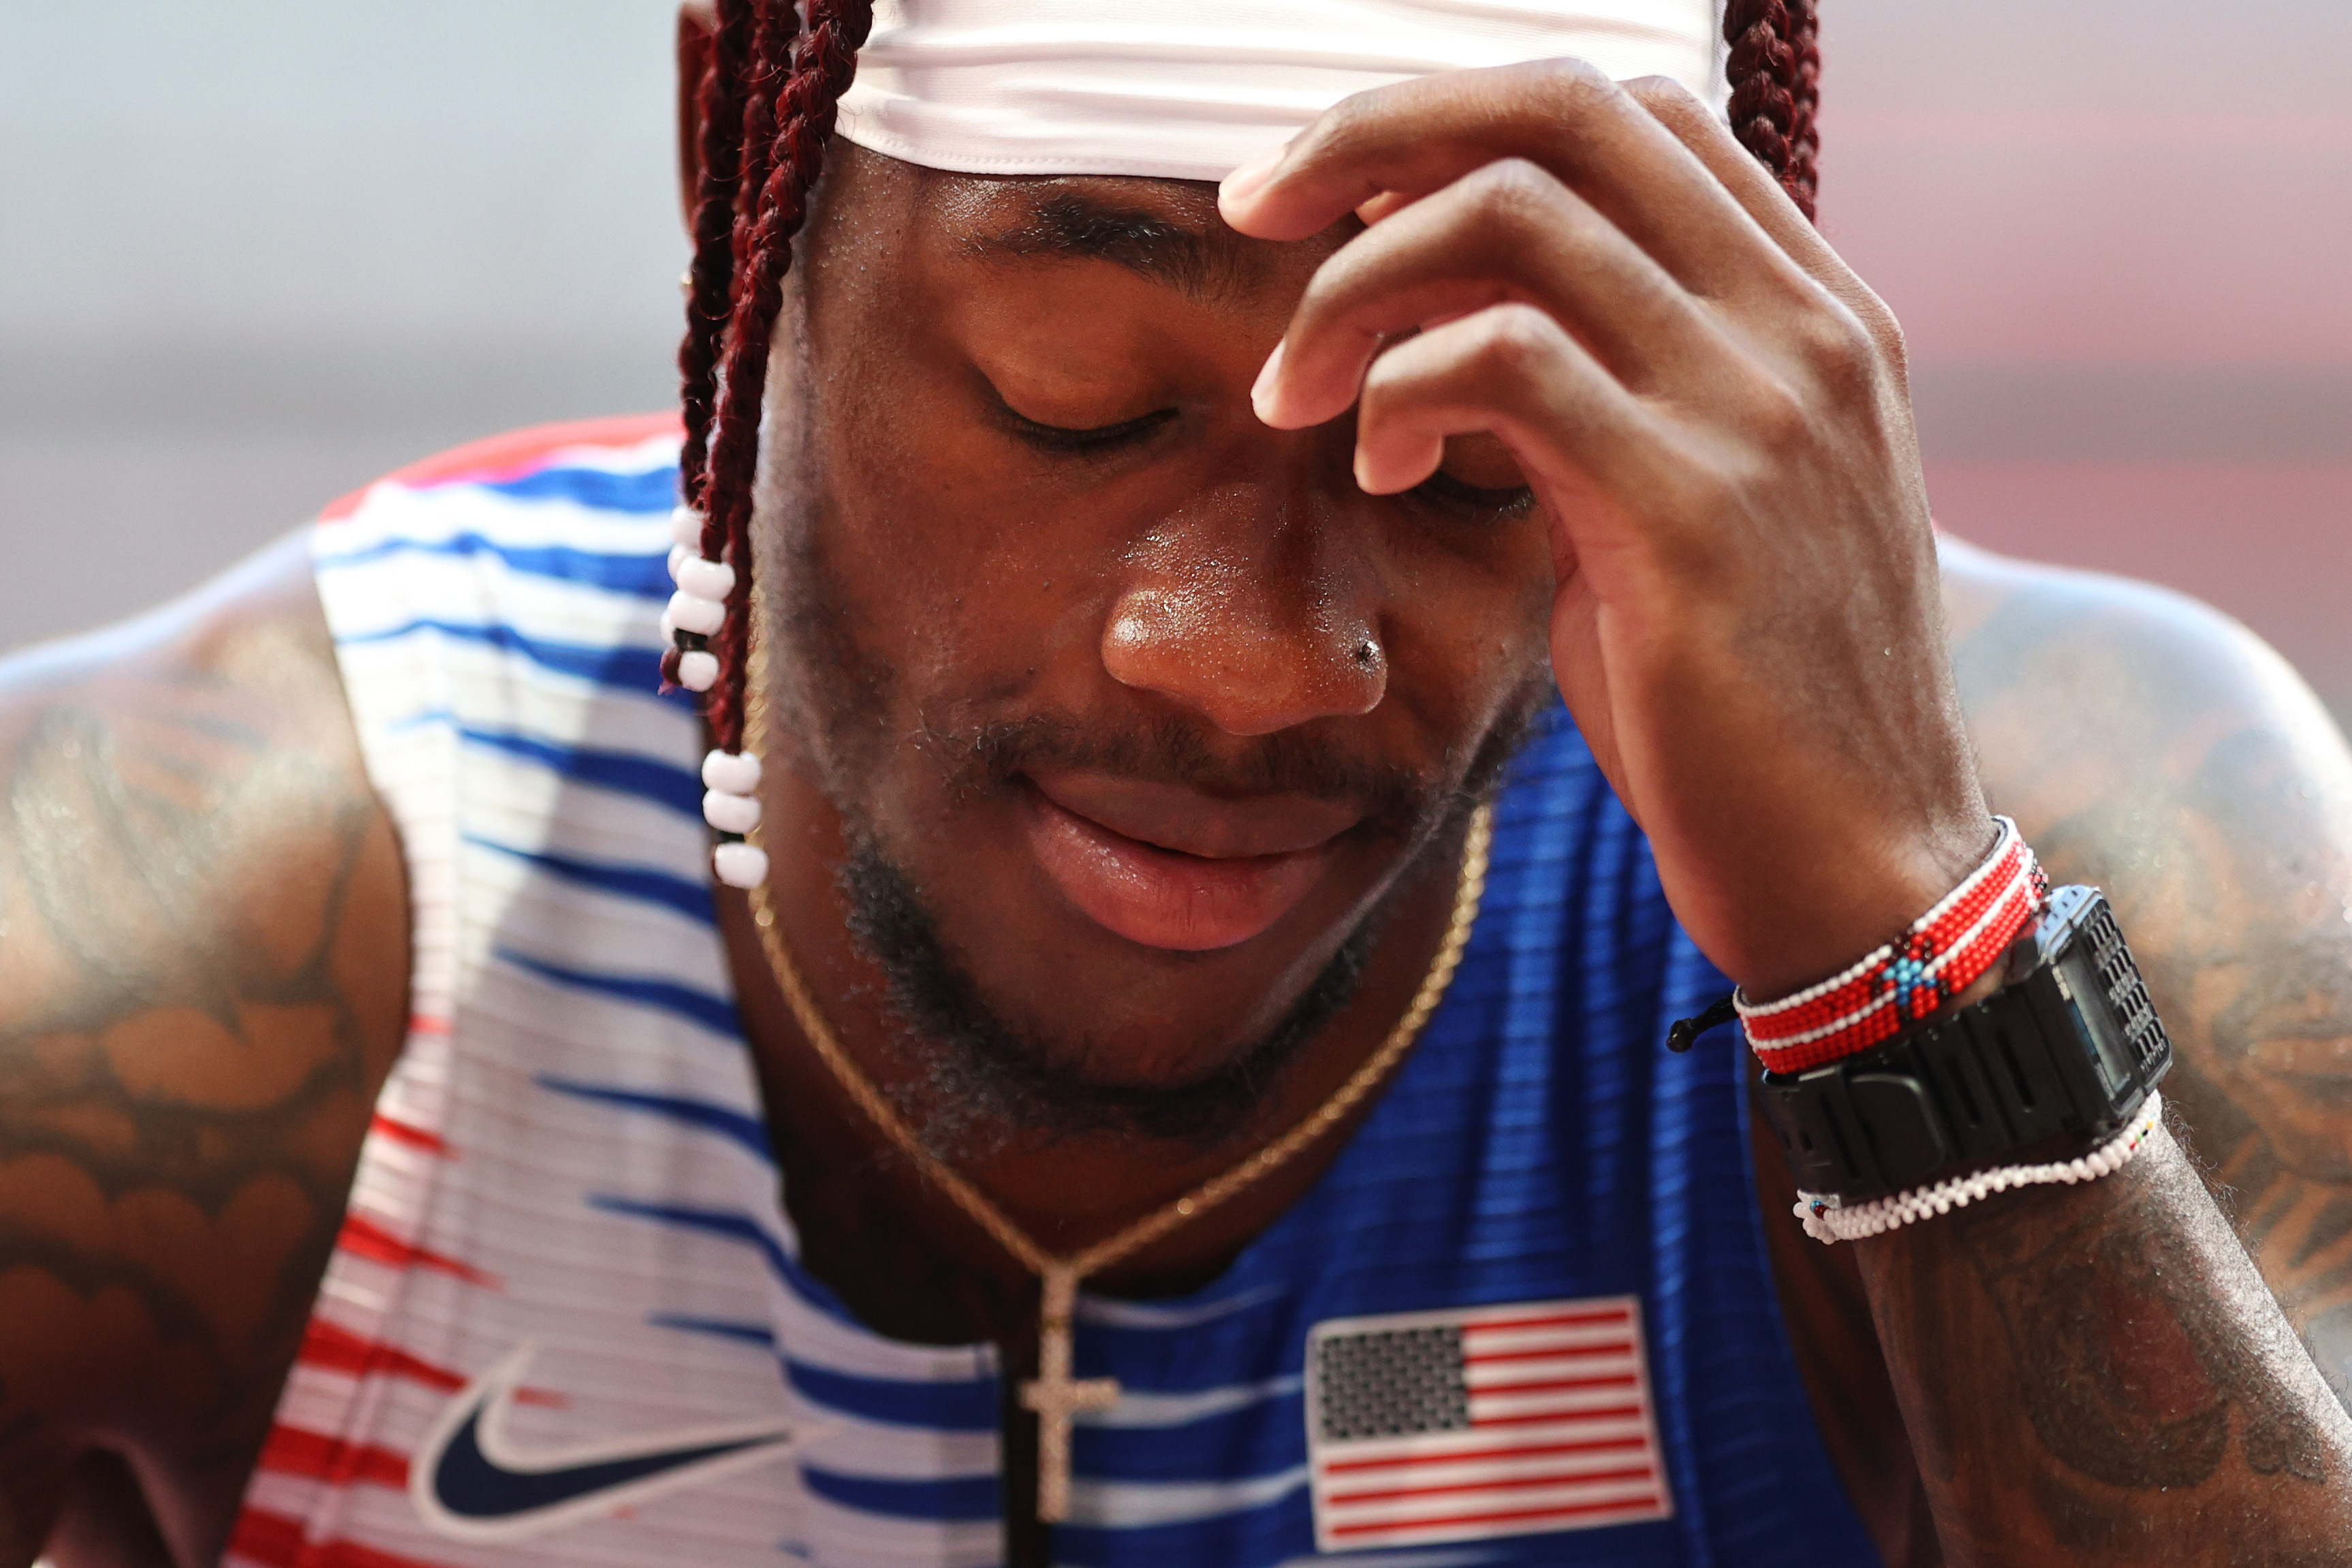 TOKYO, JAPAN - AUGUST 05: Cravon Gillespie of Team United States reacts after coming in sixth in round one of the Men's 4 x 100m Relay Heat 2 on day thirteen of the Tokyo 2020 Olympic Games at Olympic Stadium on August 05, 2021 in Tokyo, Japan. (Photo by Patrick Smith/Getty Images)